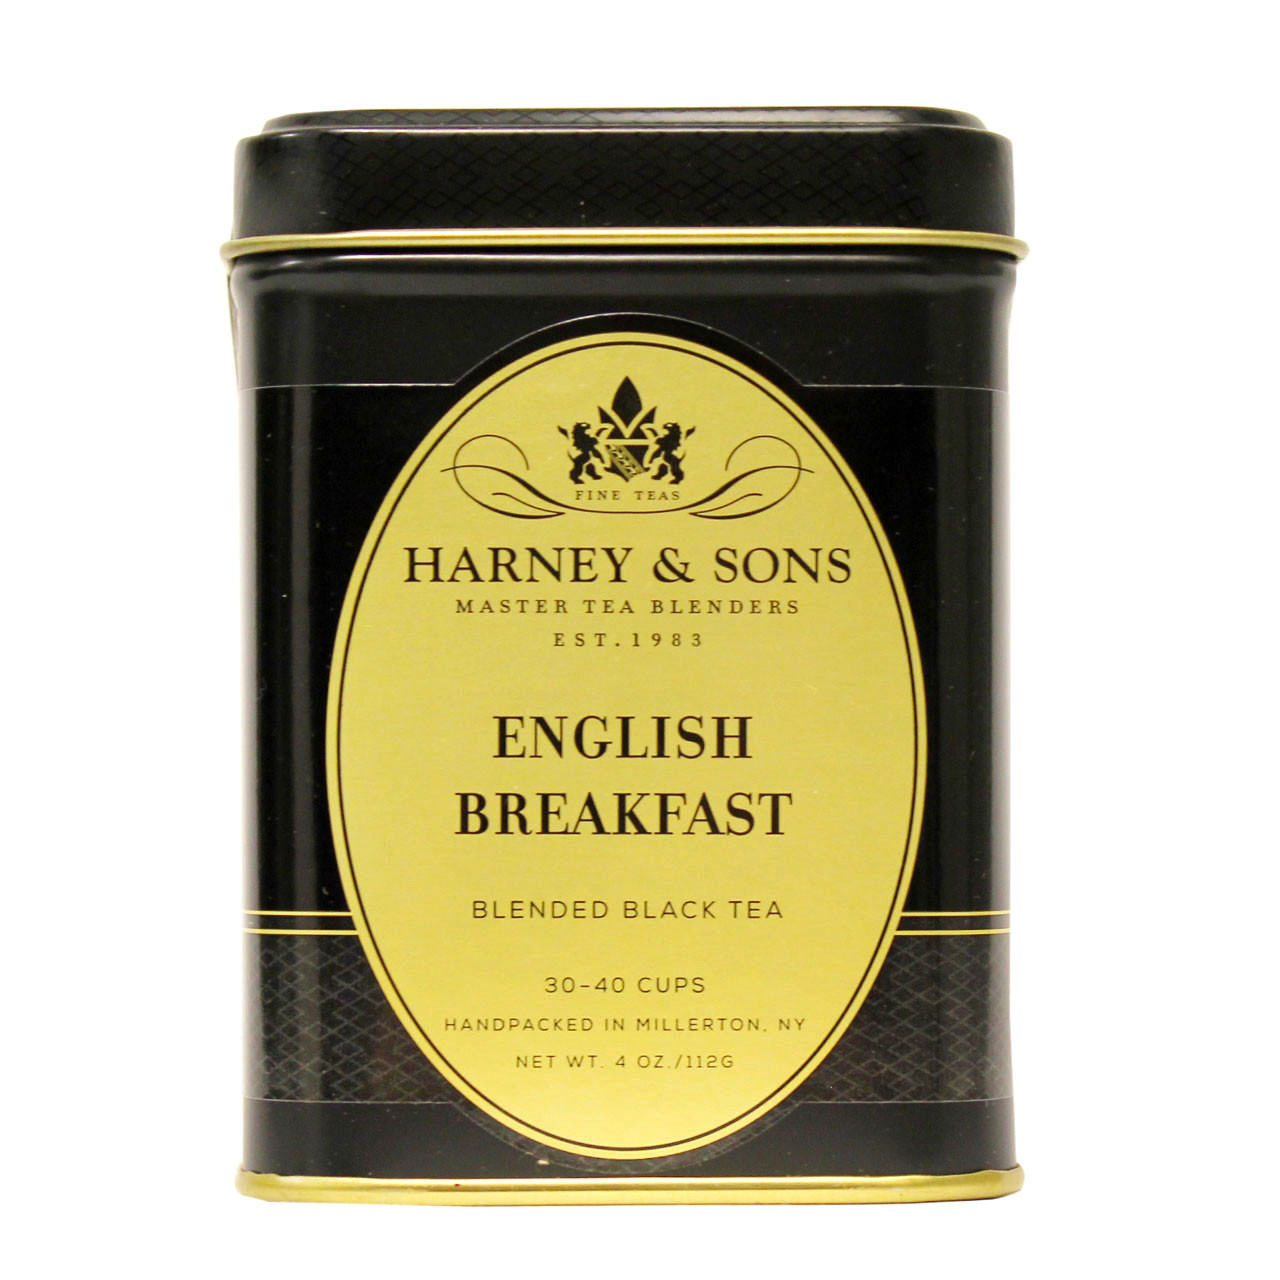 Harney & Sons We source and blend our teas for the enjoyment of our customers, and take pride in exceeding their expectations with every cup.